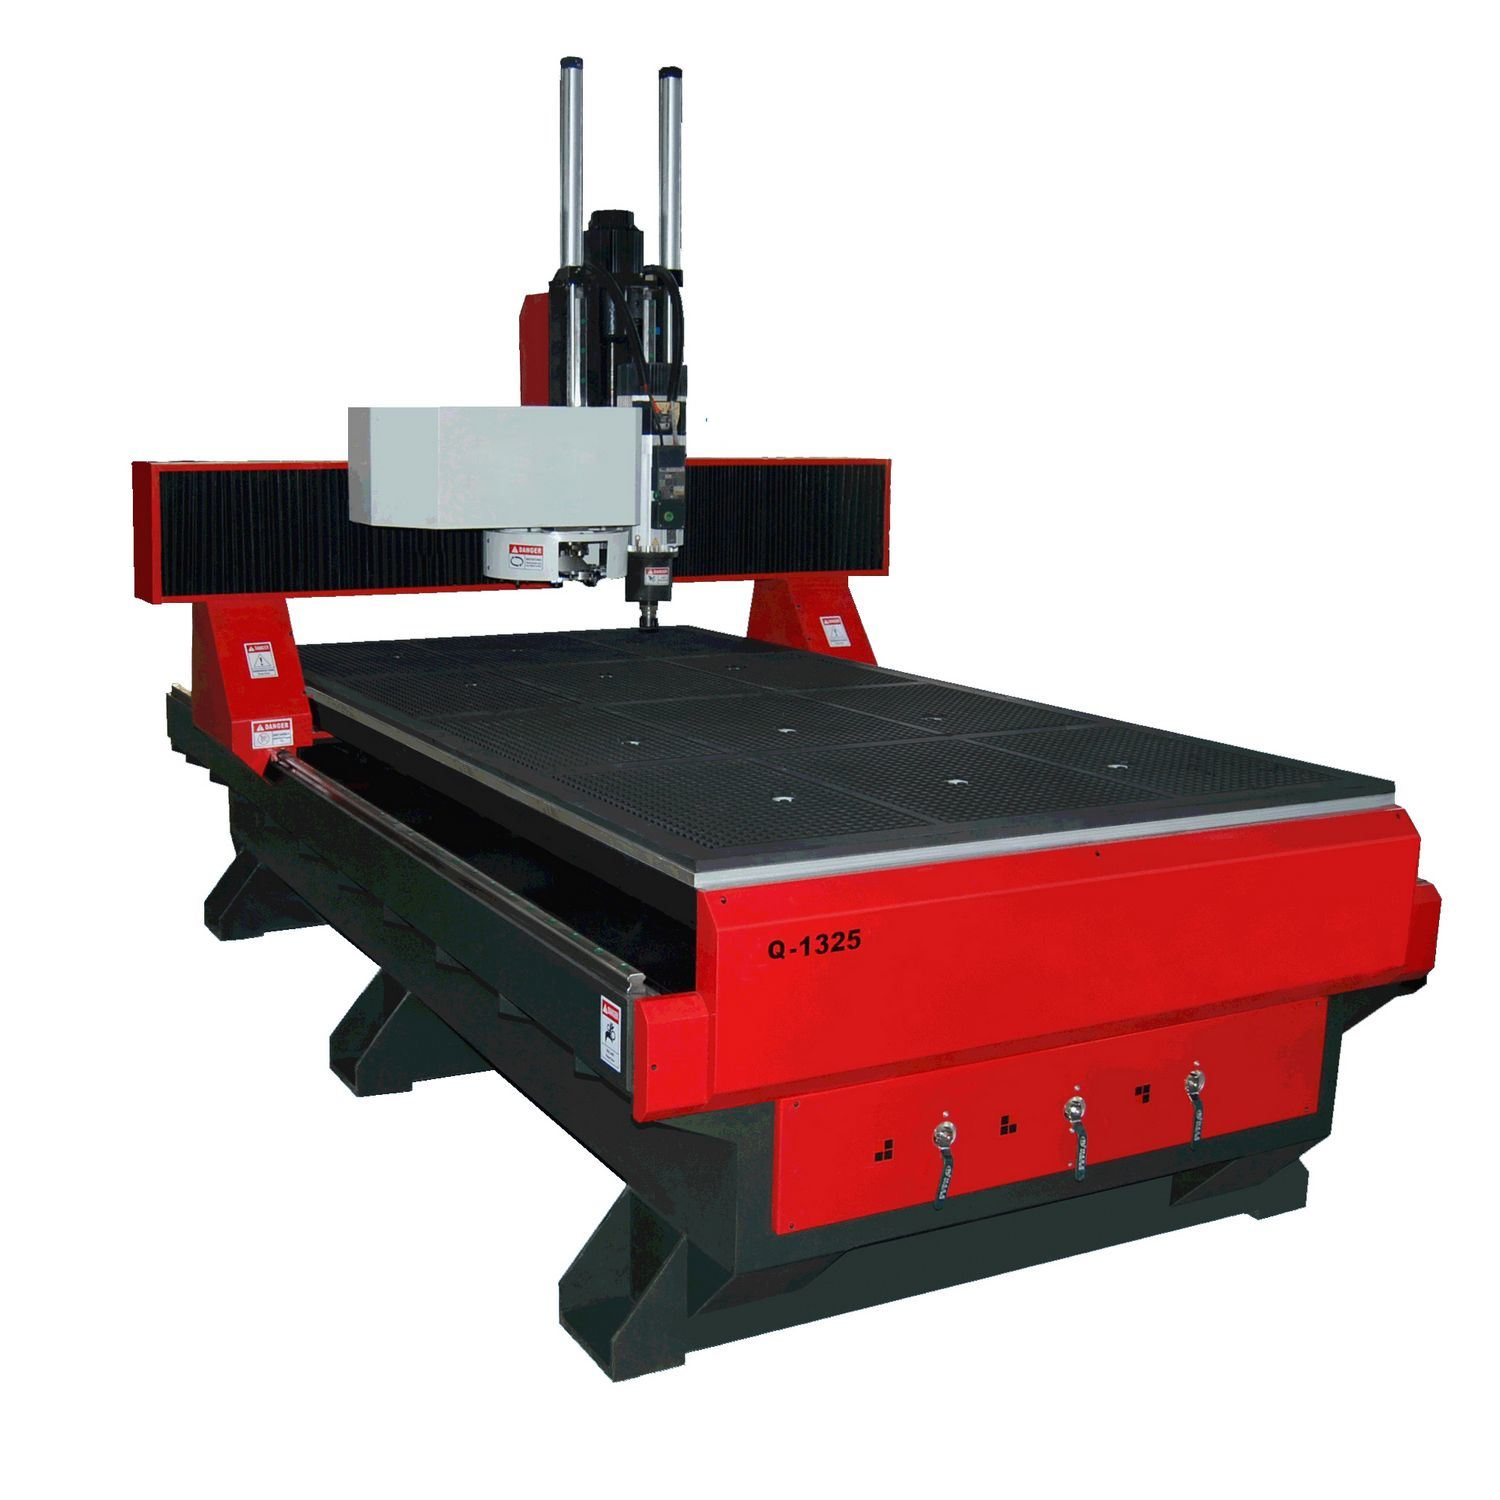 China Wood Carving Machine UJET (CJ-Q1325) - China Wood Carving ...